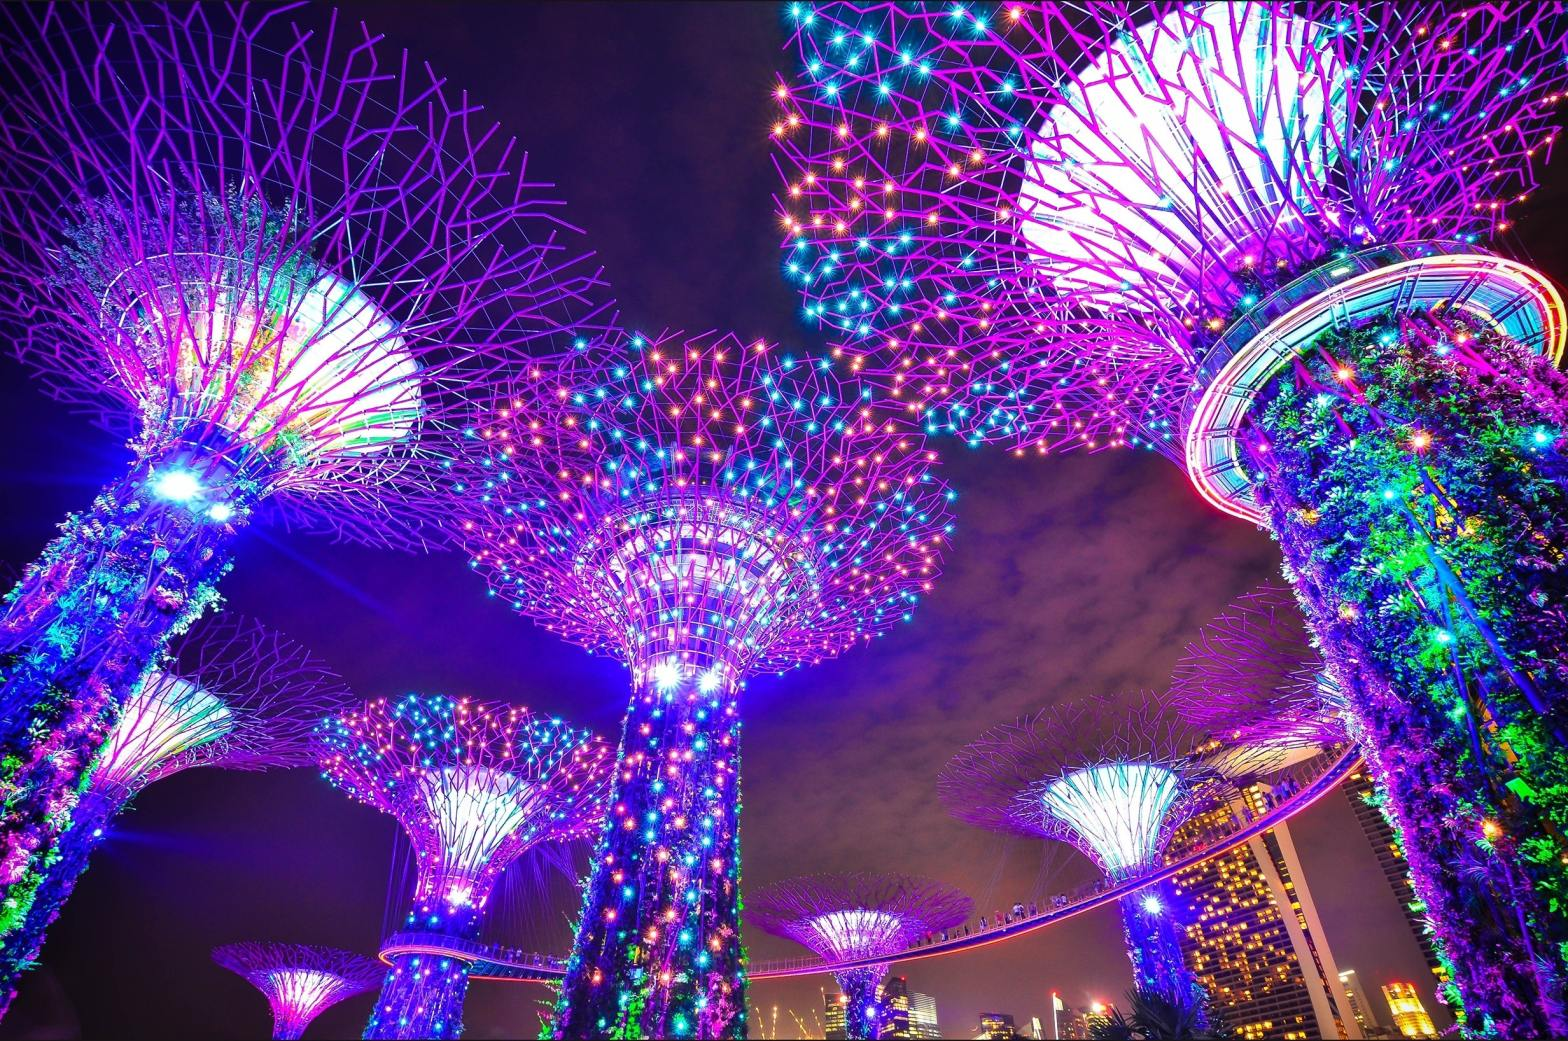 Supertree Grove at Gardens by the Bay Singapore